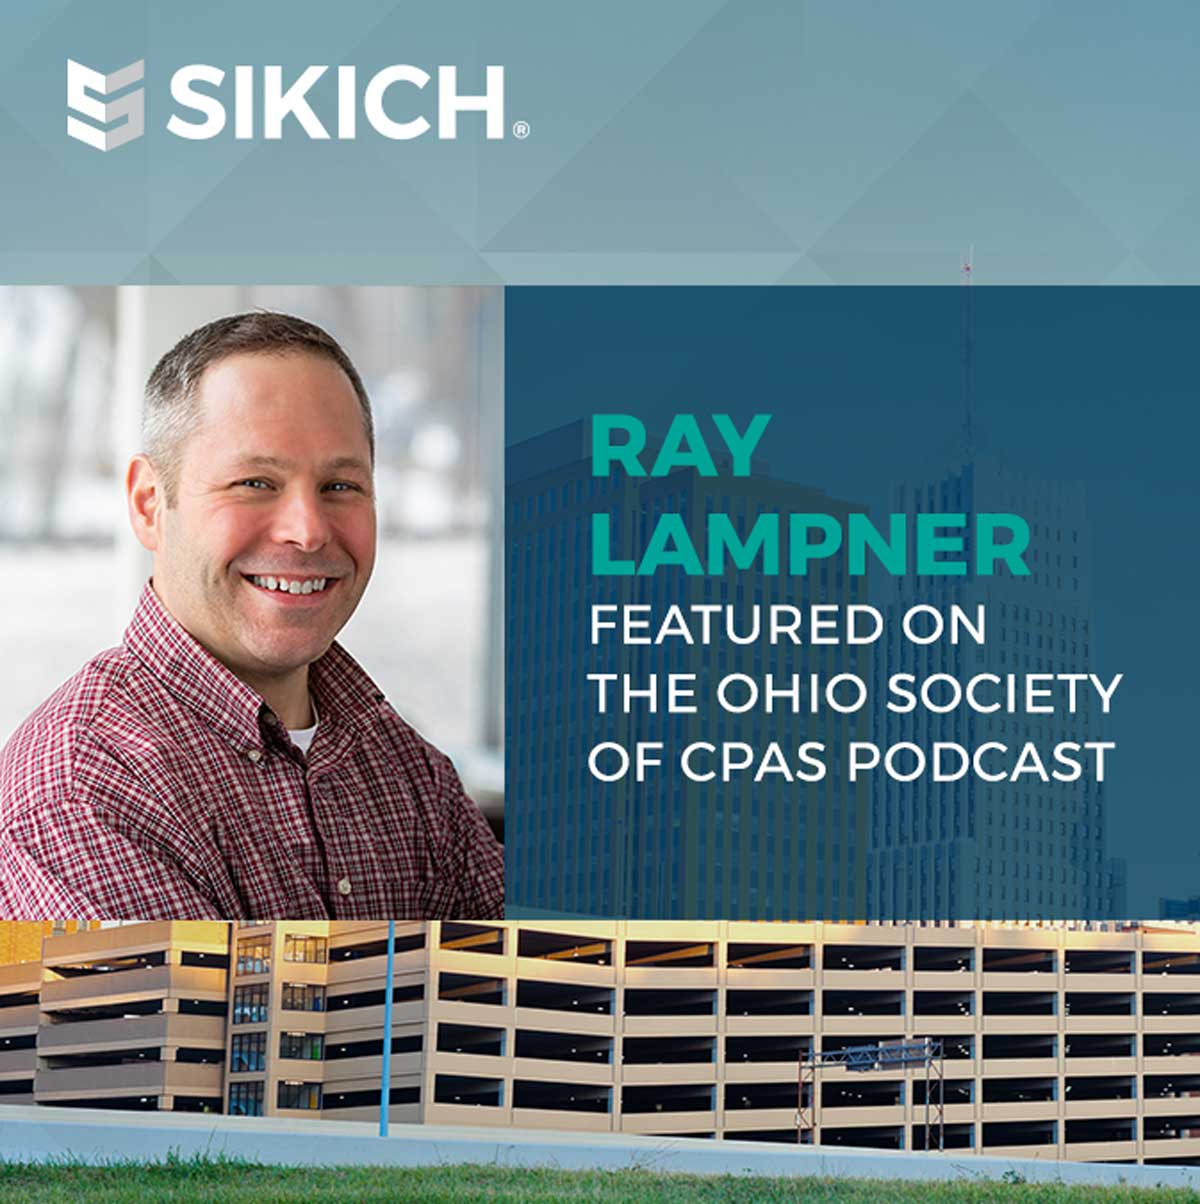 Ray Lampner featured on the Ohio Society of CPAs podcast